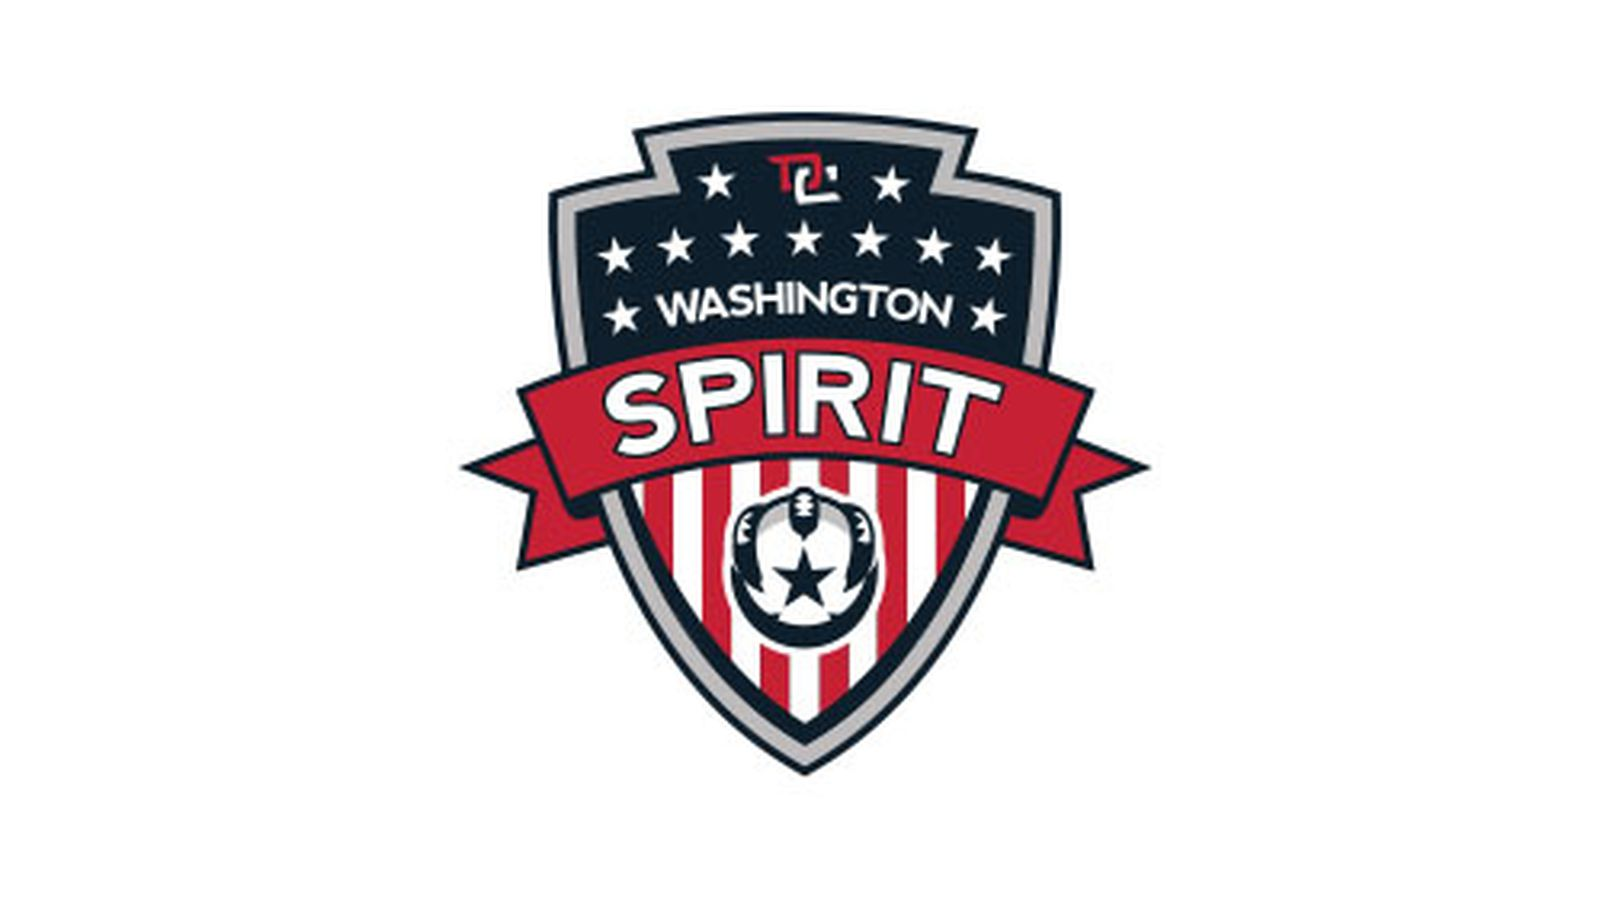 160410_washington_spirit_-_logo_slate.0.0